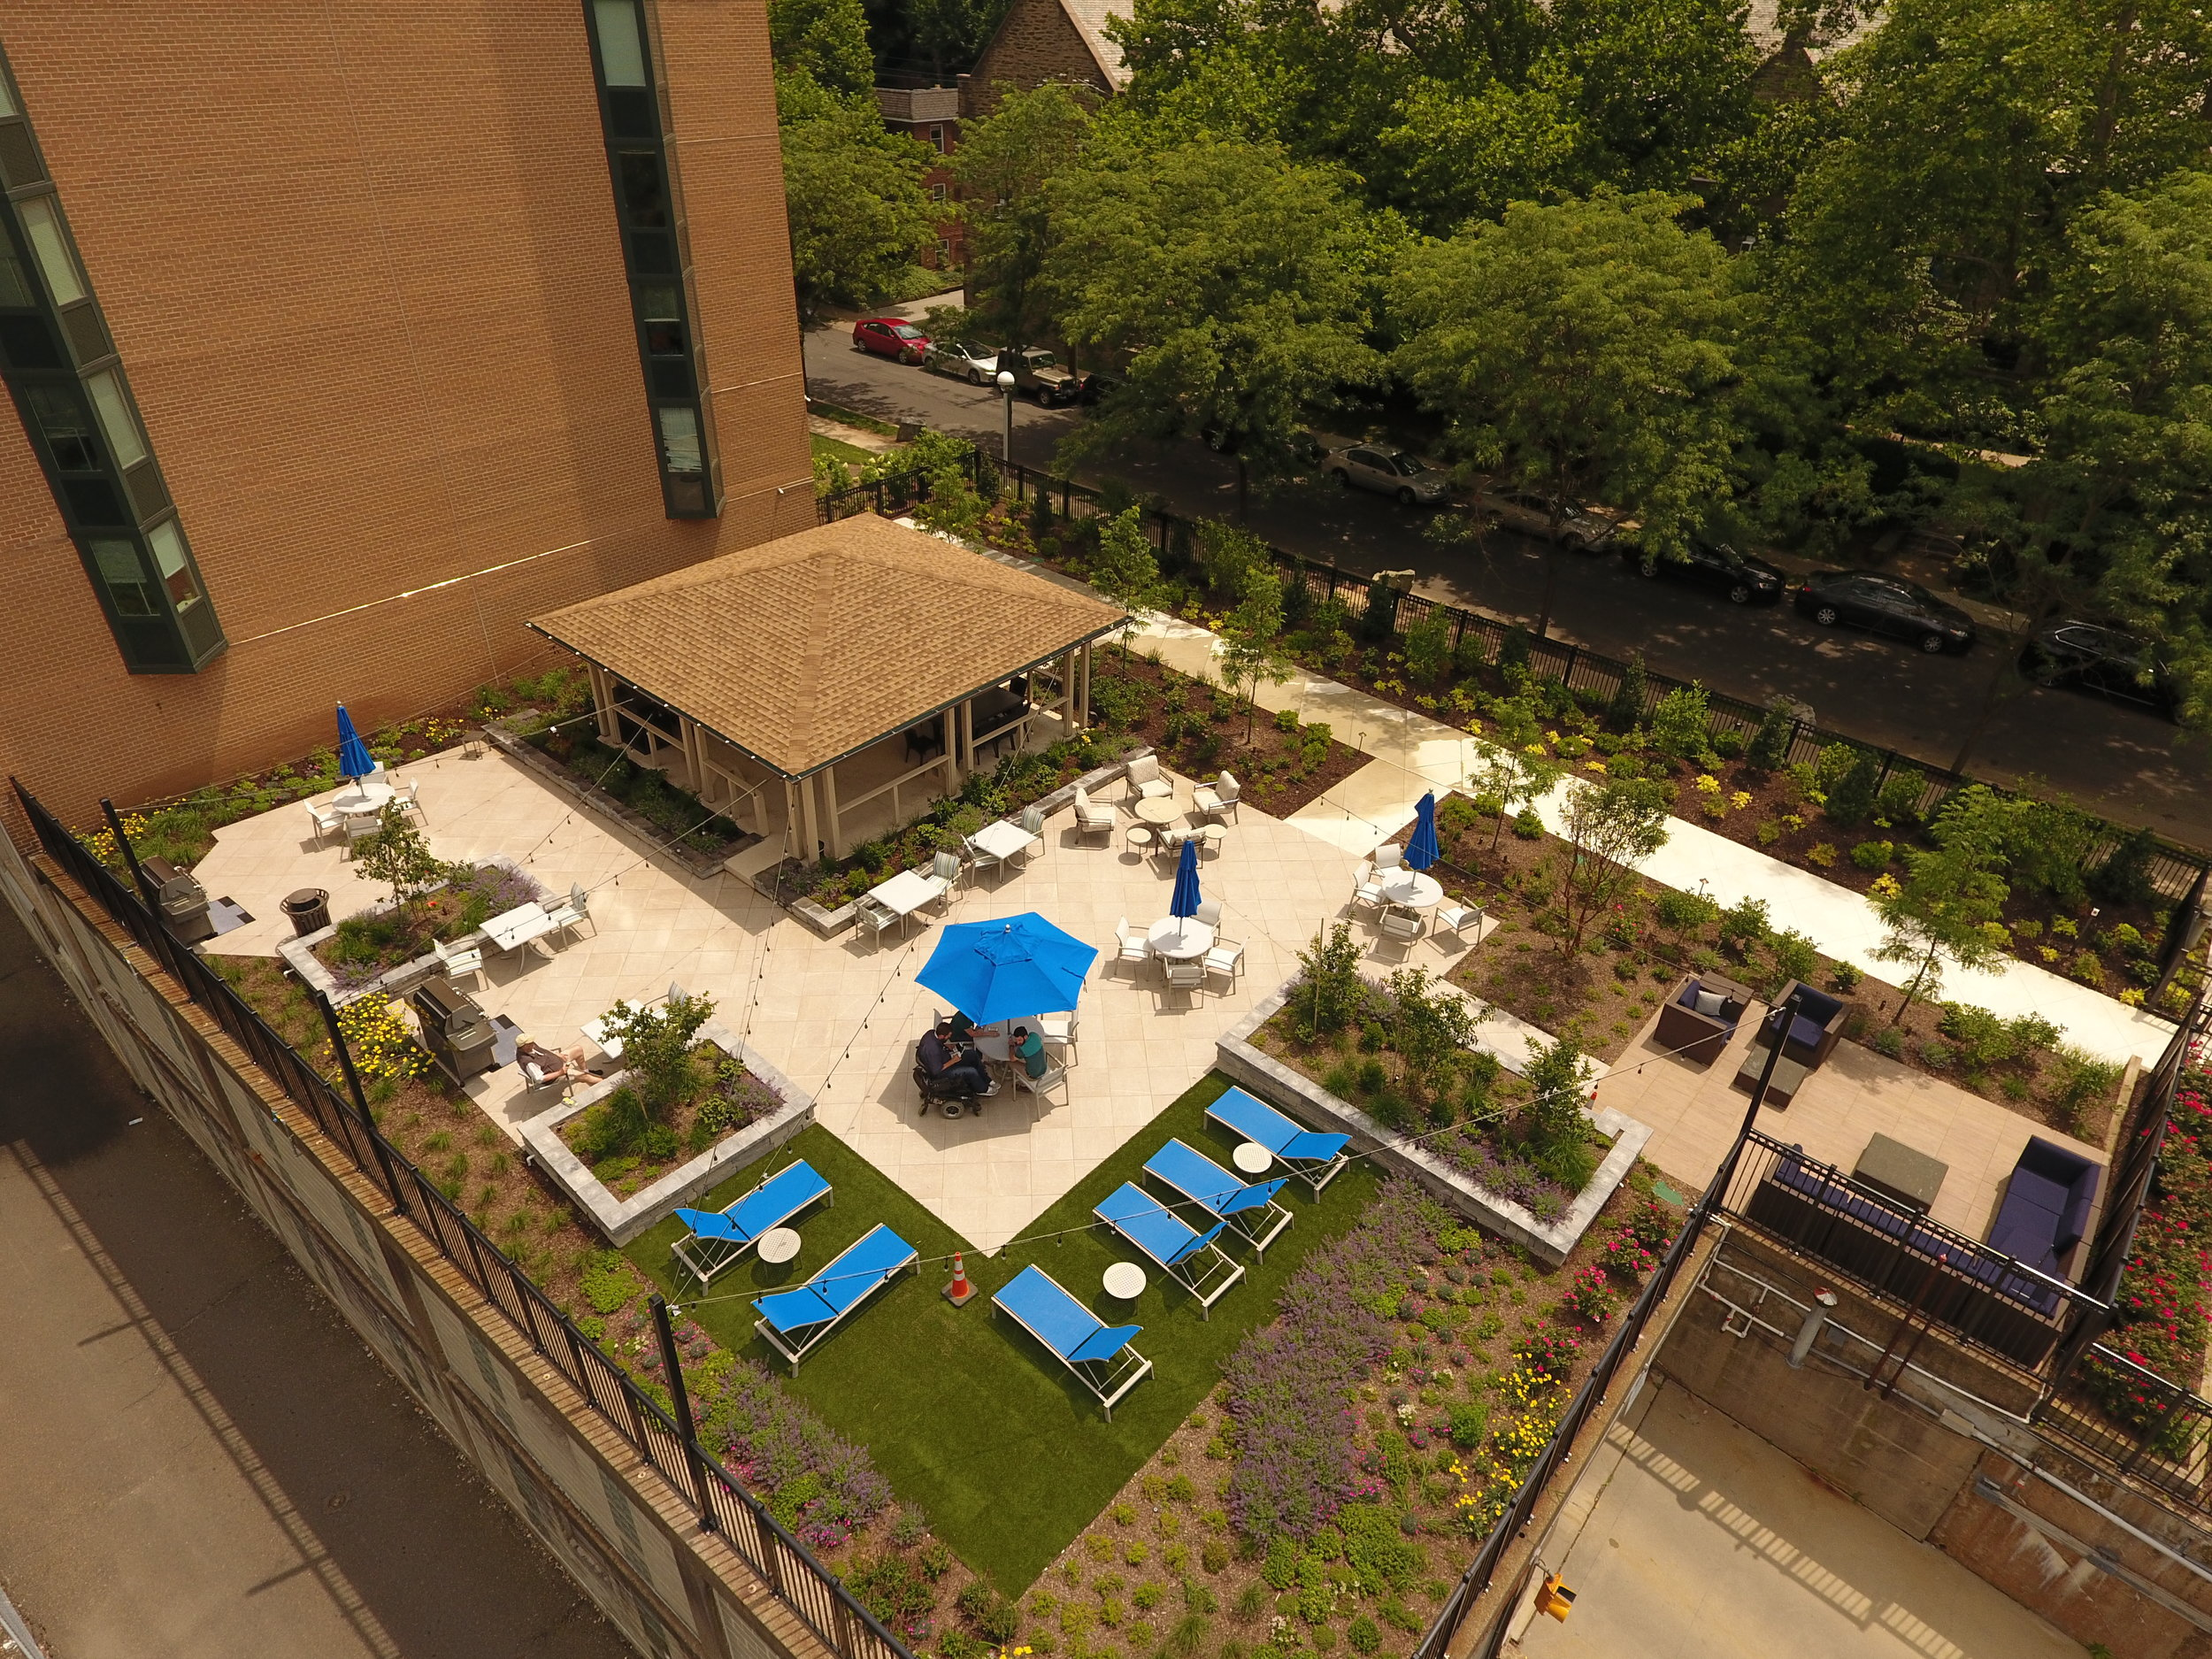 Hill House Drone Image.JPG